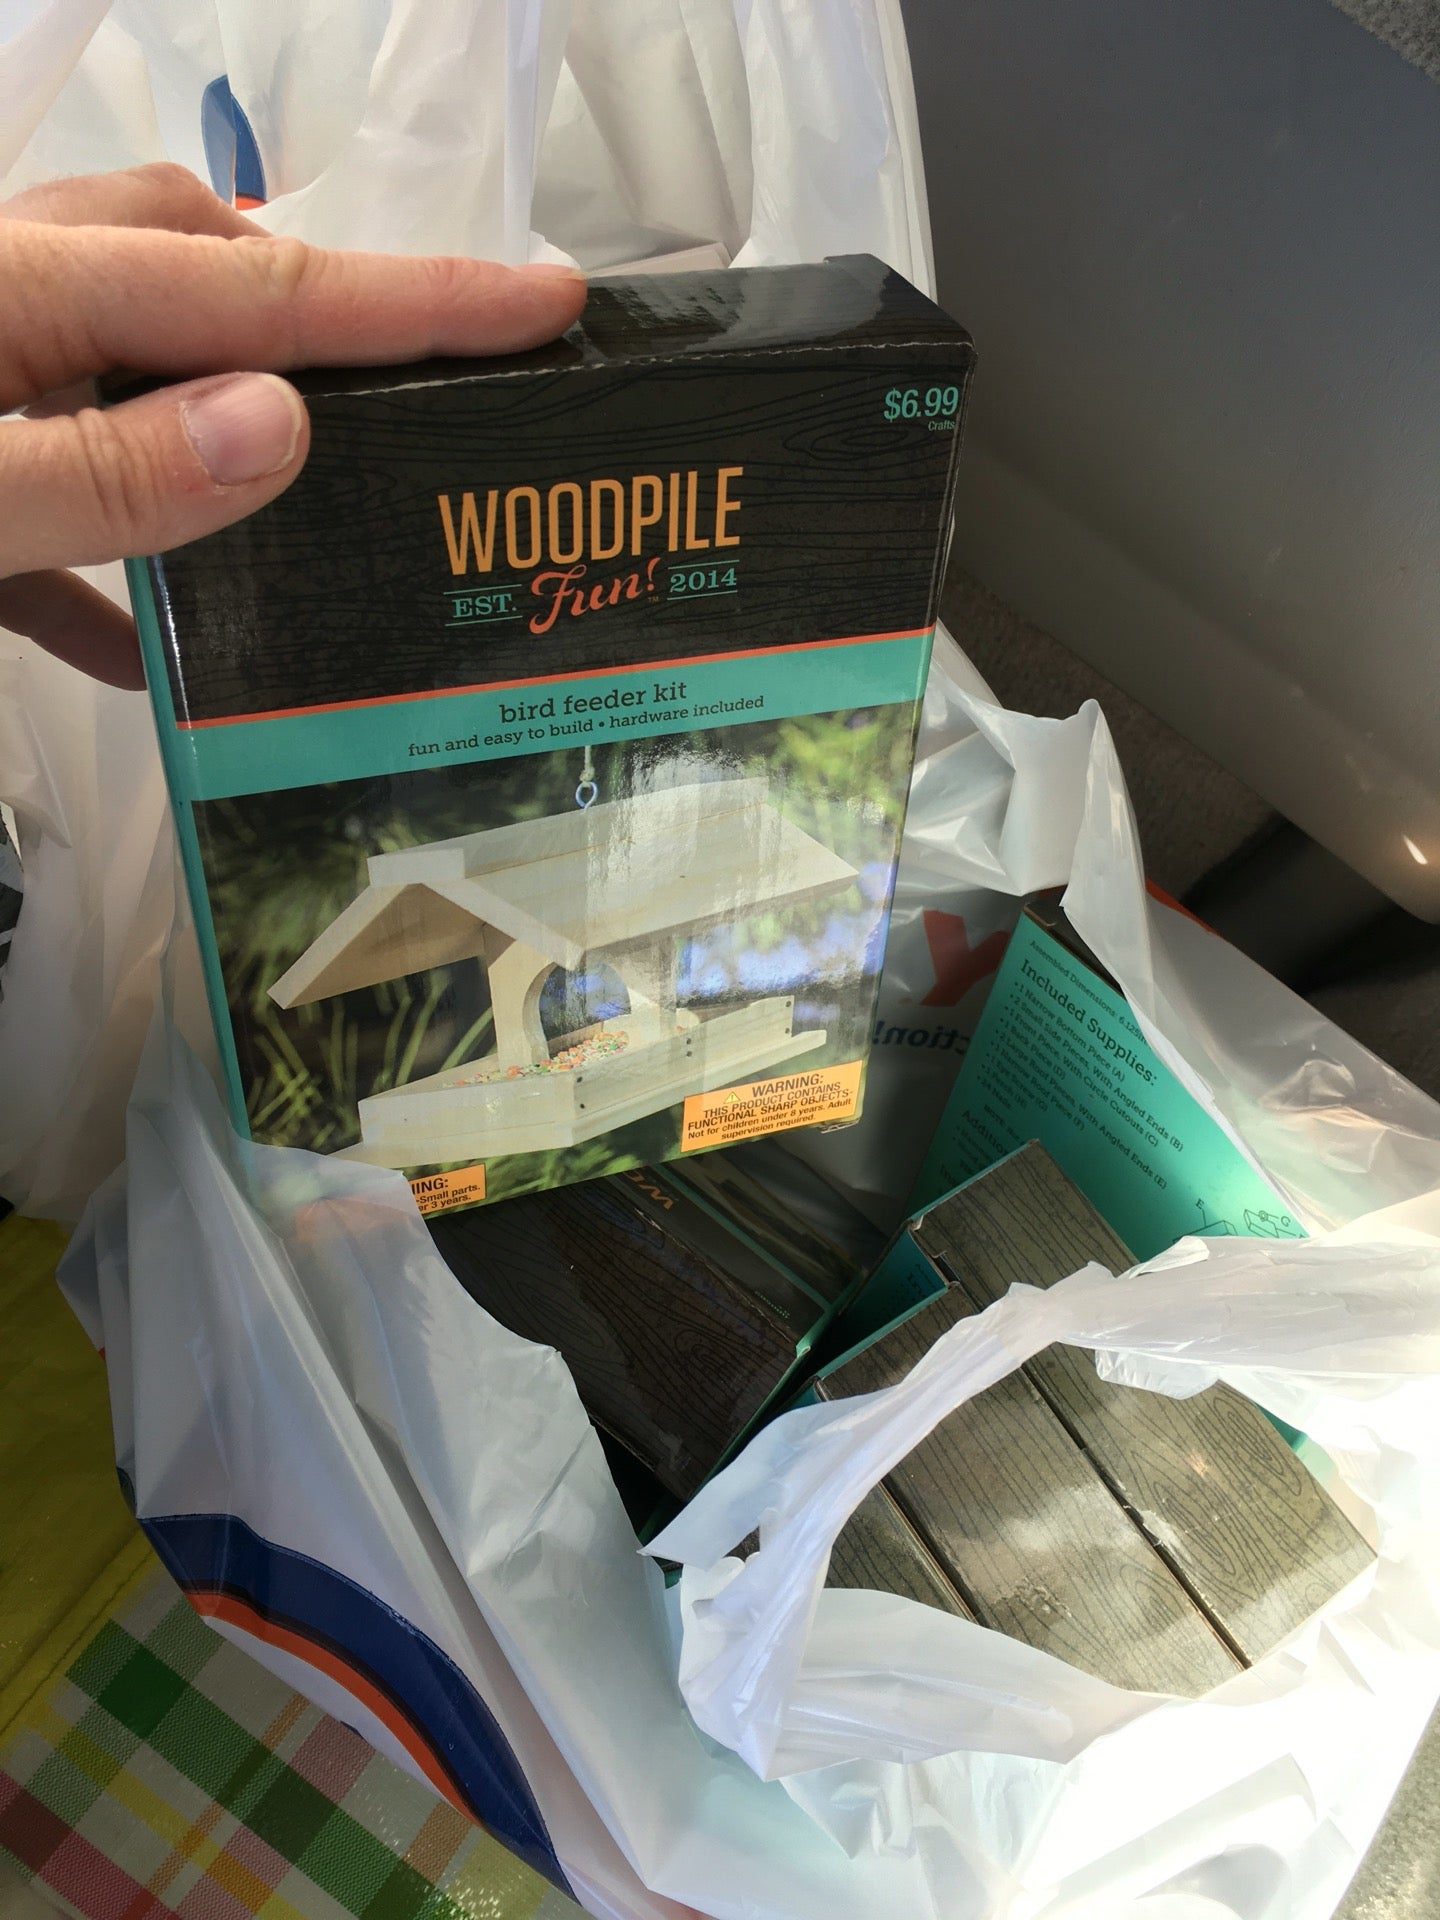 Hobby Lobby in Concord - Parent Reviews on Winnie